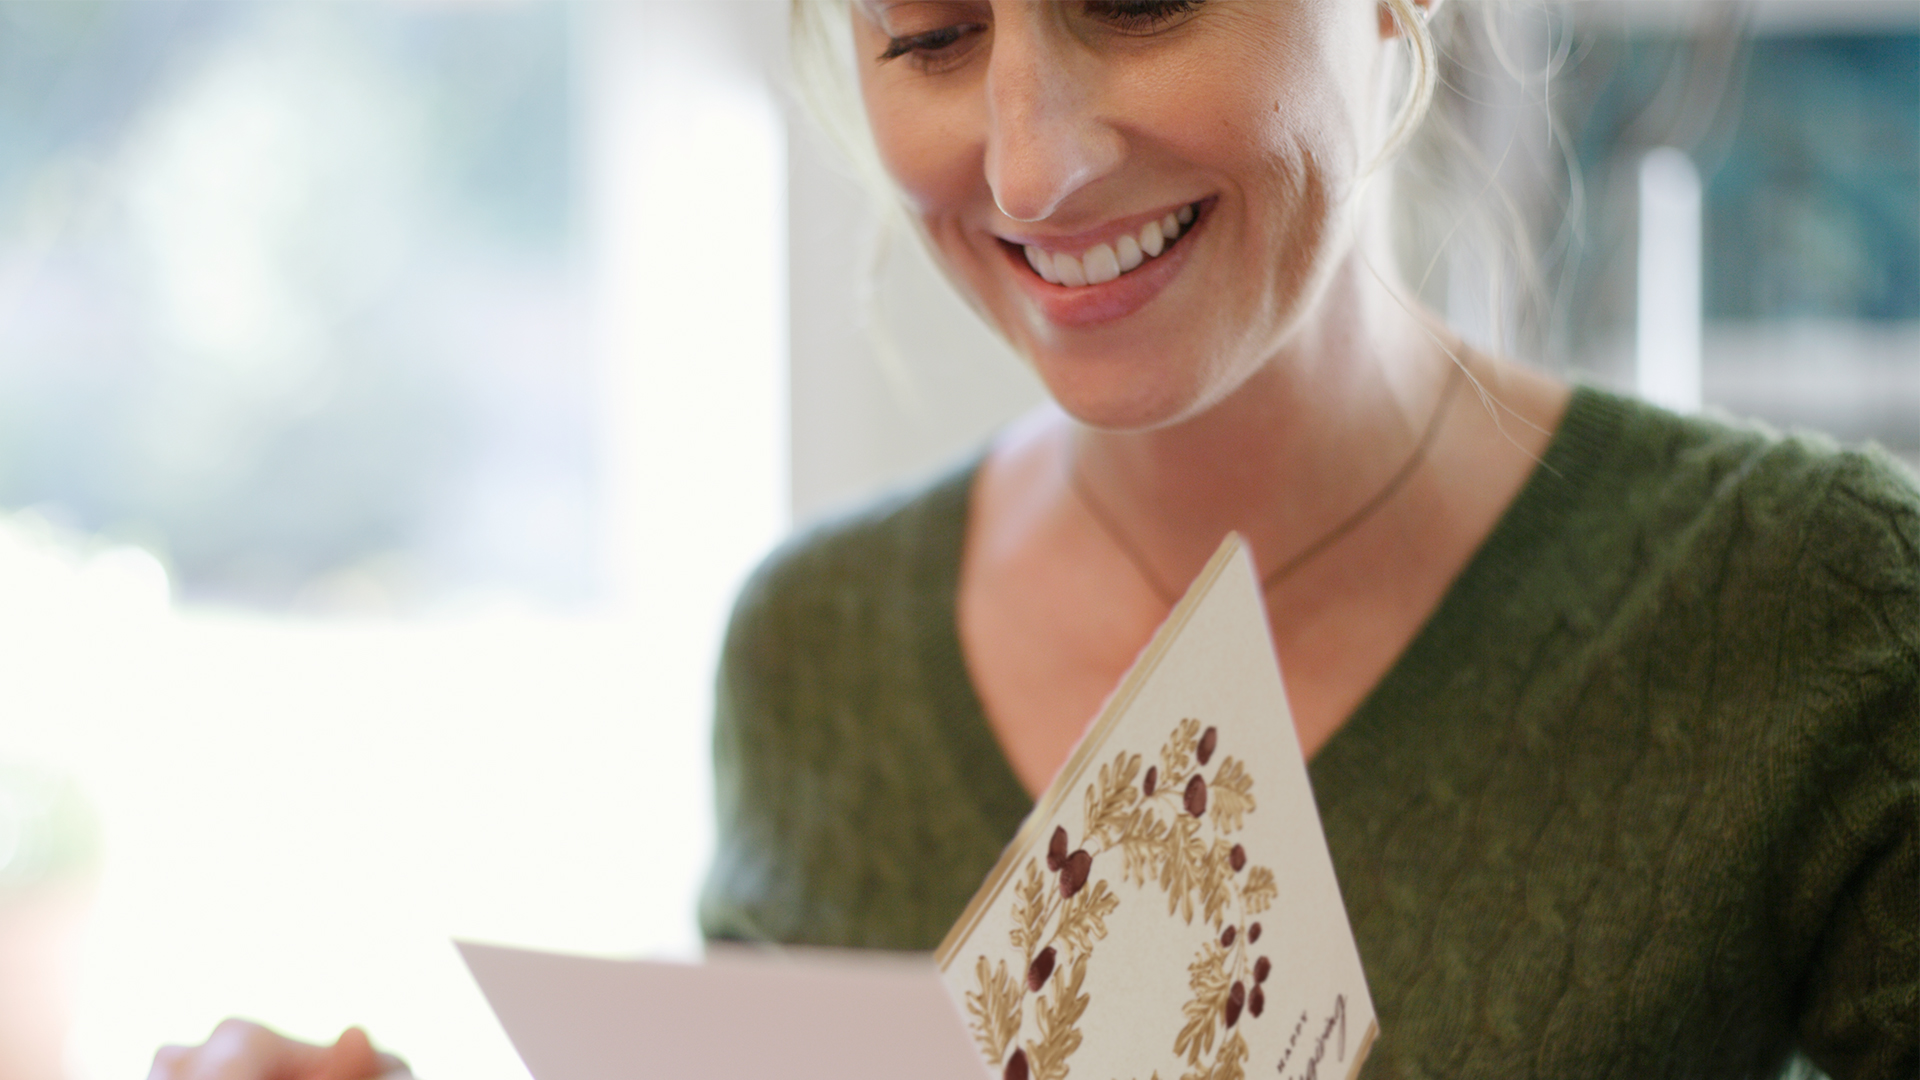 A woman, smiling, looks at an open Thanksgiving card, taking in the personal message.  a card would be an unexpected and meaningful moment.